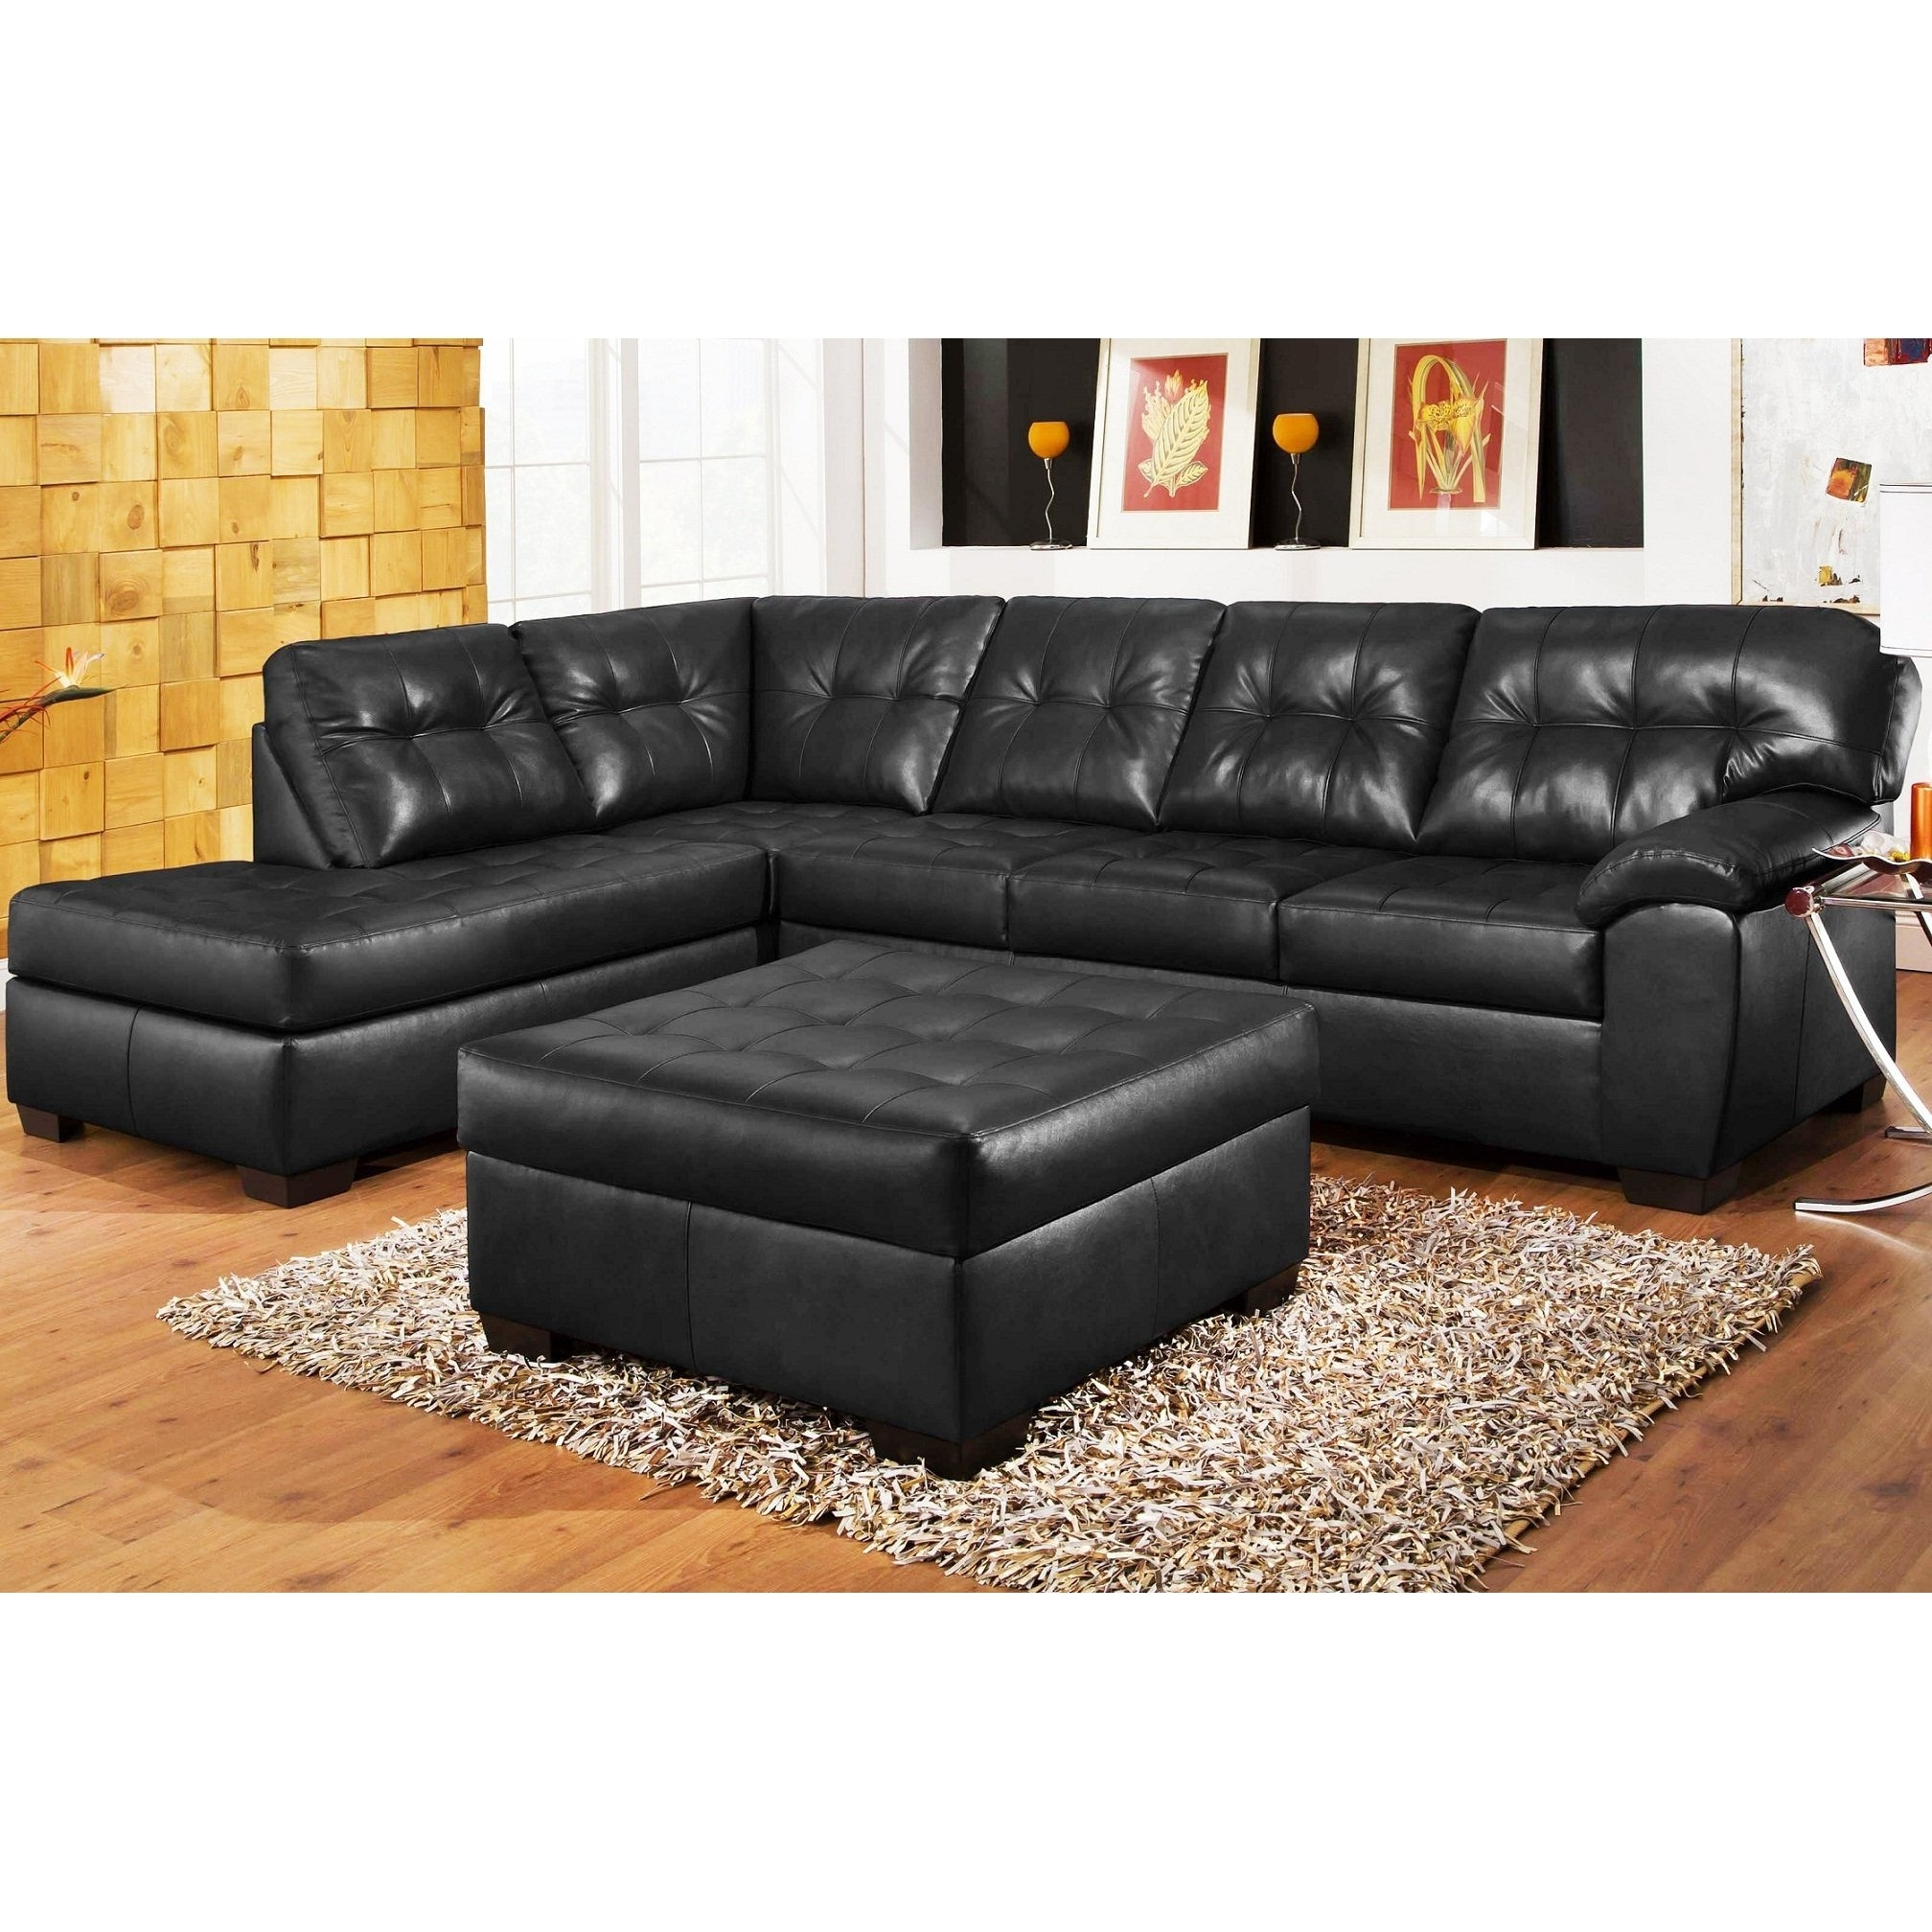 Black Leather Sectionals With Ottoman In Preferred Interesting Black Leather Sectionals With Ottomans – Printableboutique (View 3 of 20)